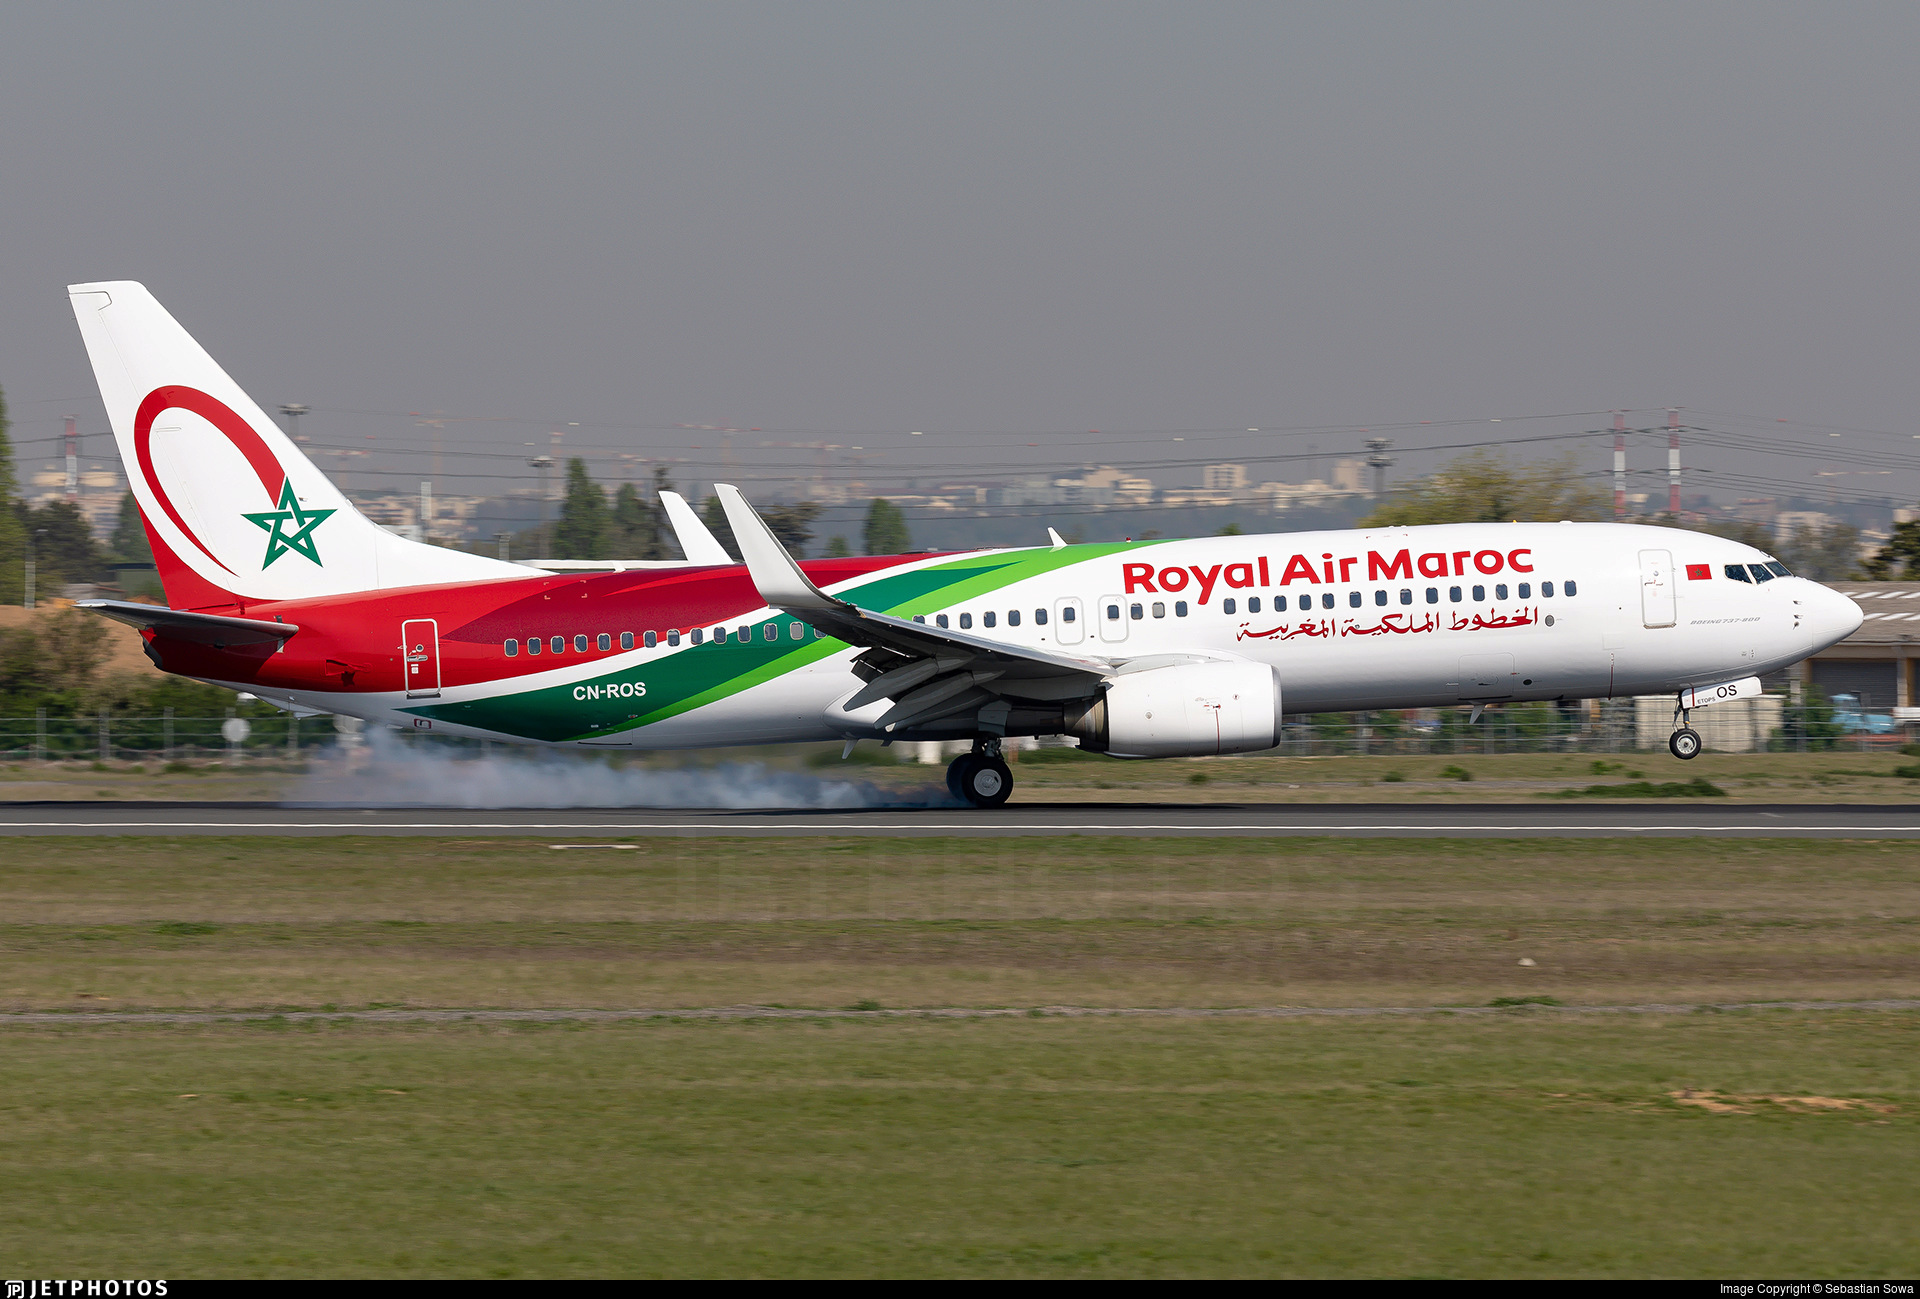 Royal Air Maroc - Page 23 _11ijp21